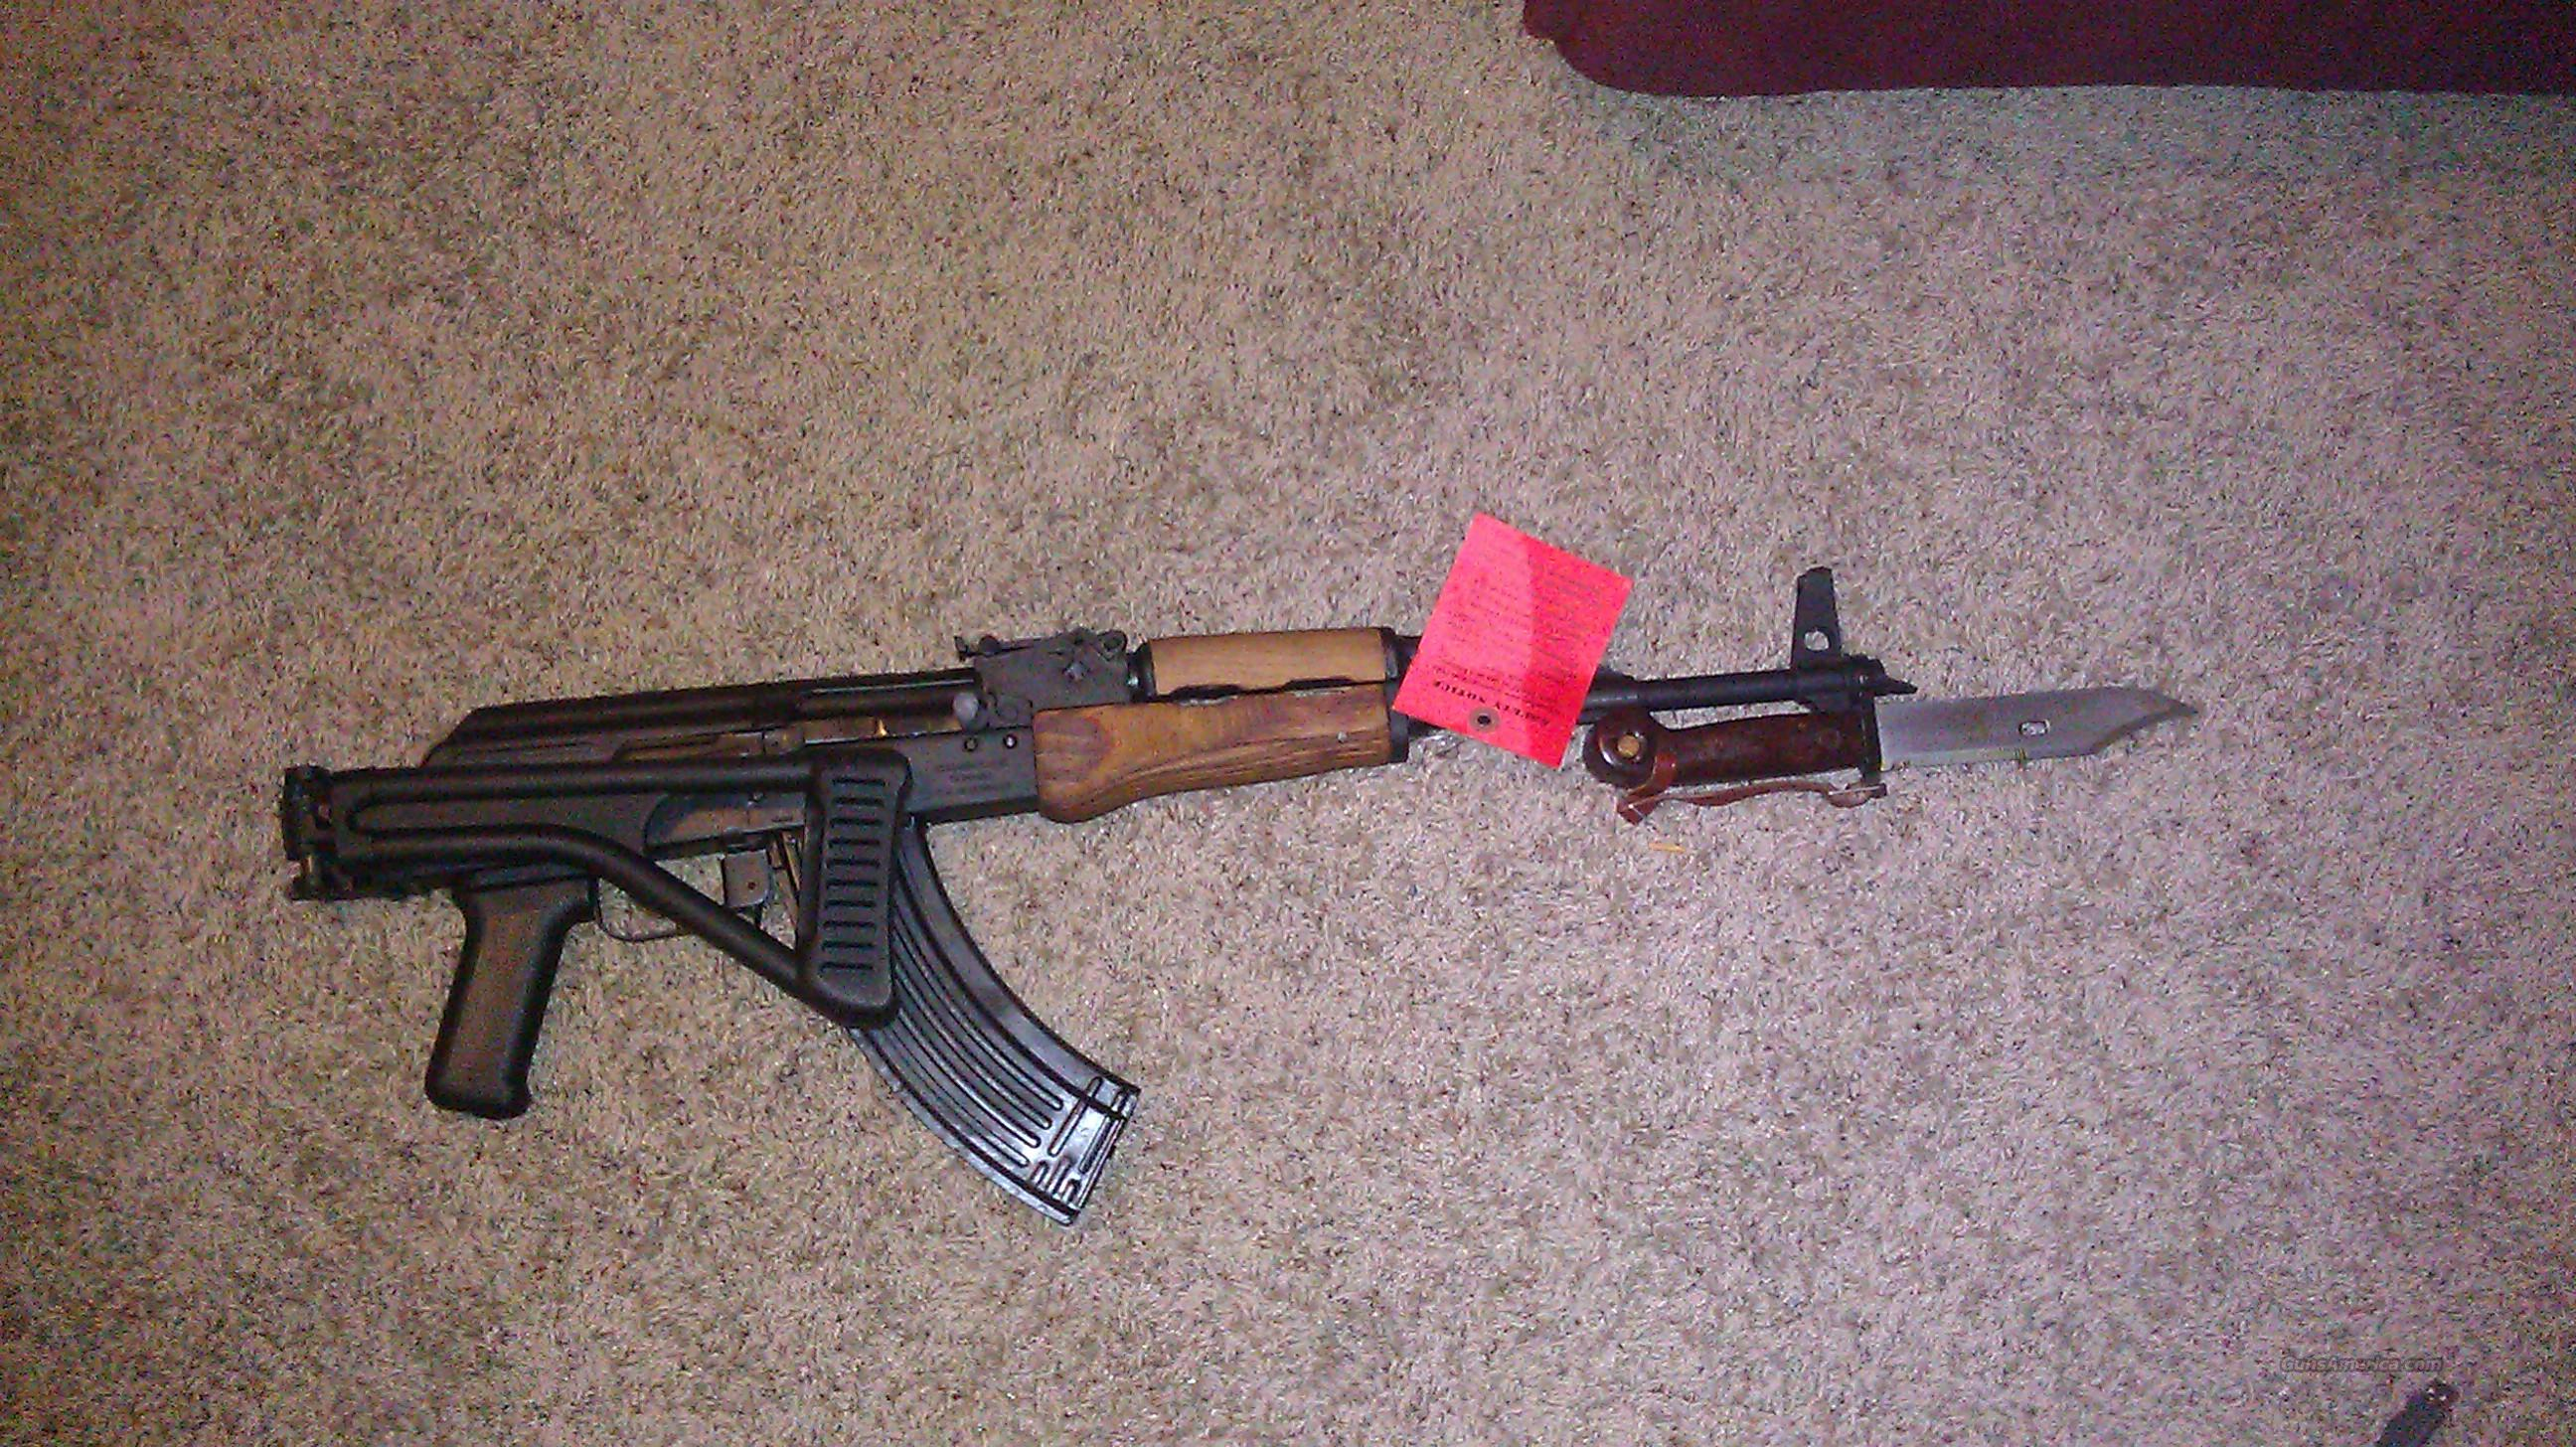 WASR-10 Side Folder w/ 2 mags bayonet AK47 AK-47  Guns > Rifles > AK-47 Rifles (and copies) > Folding Stock